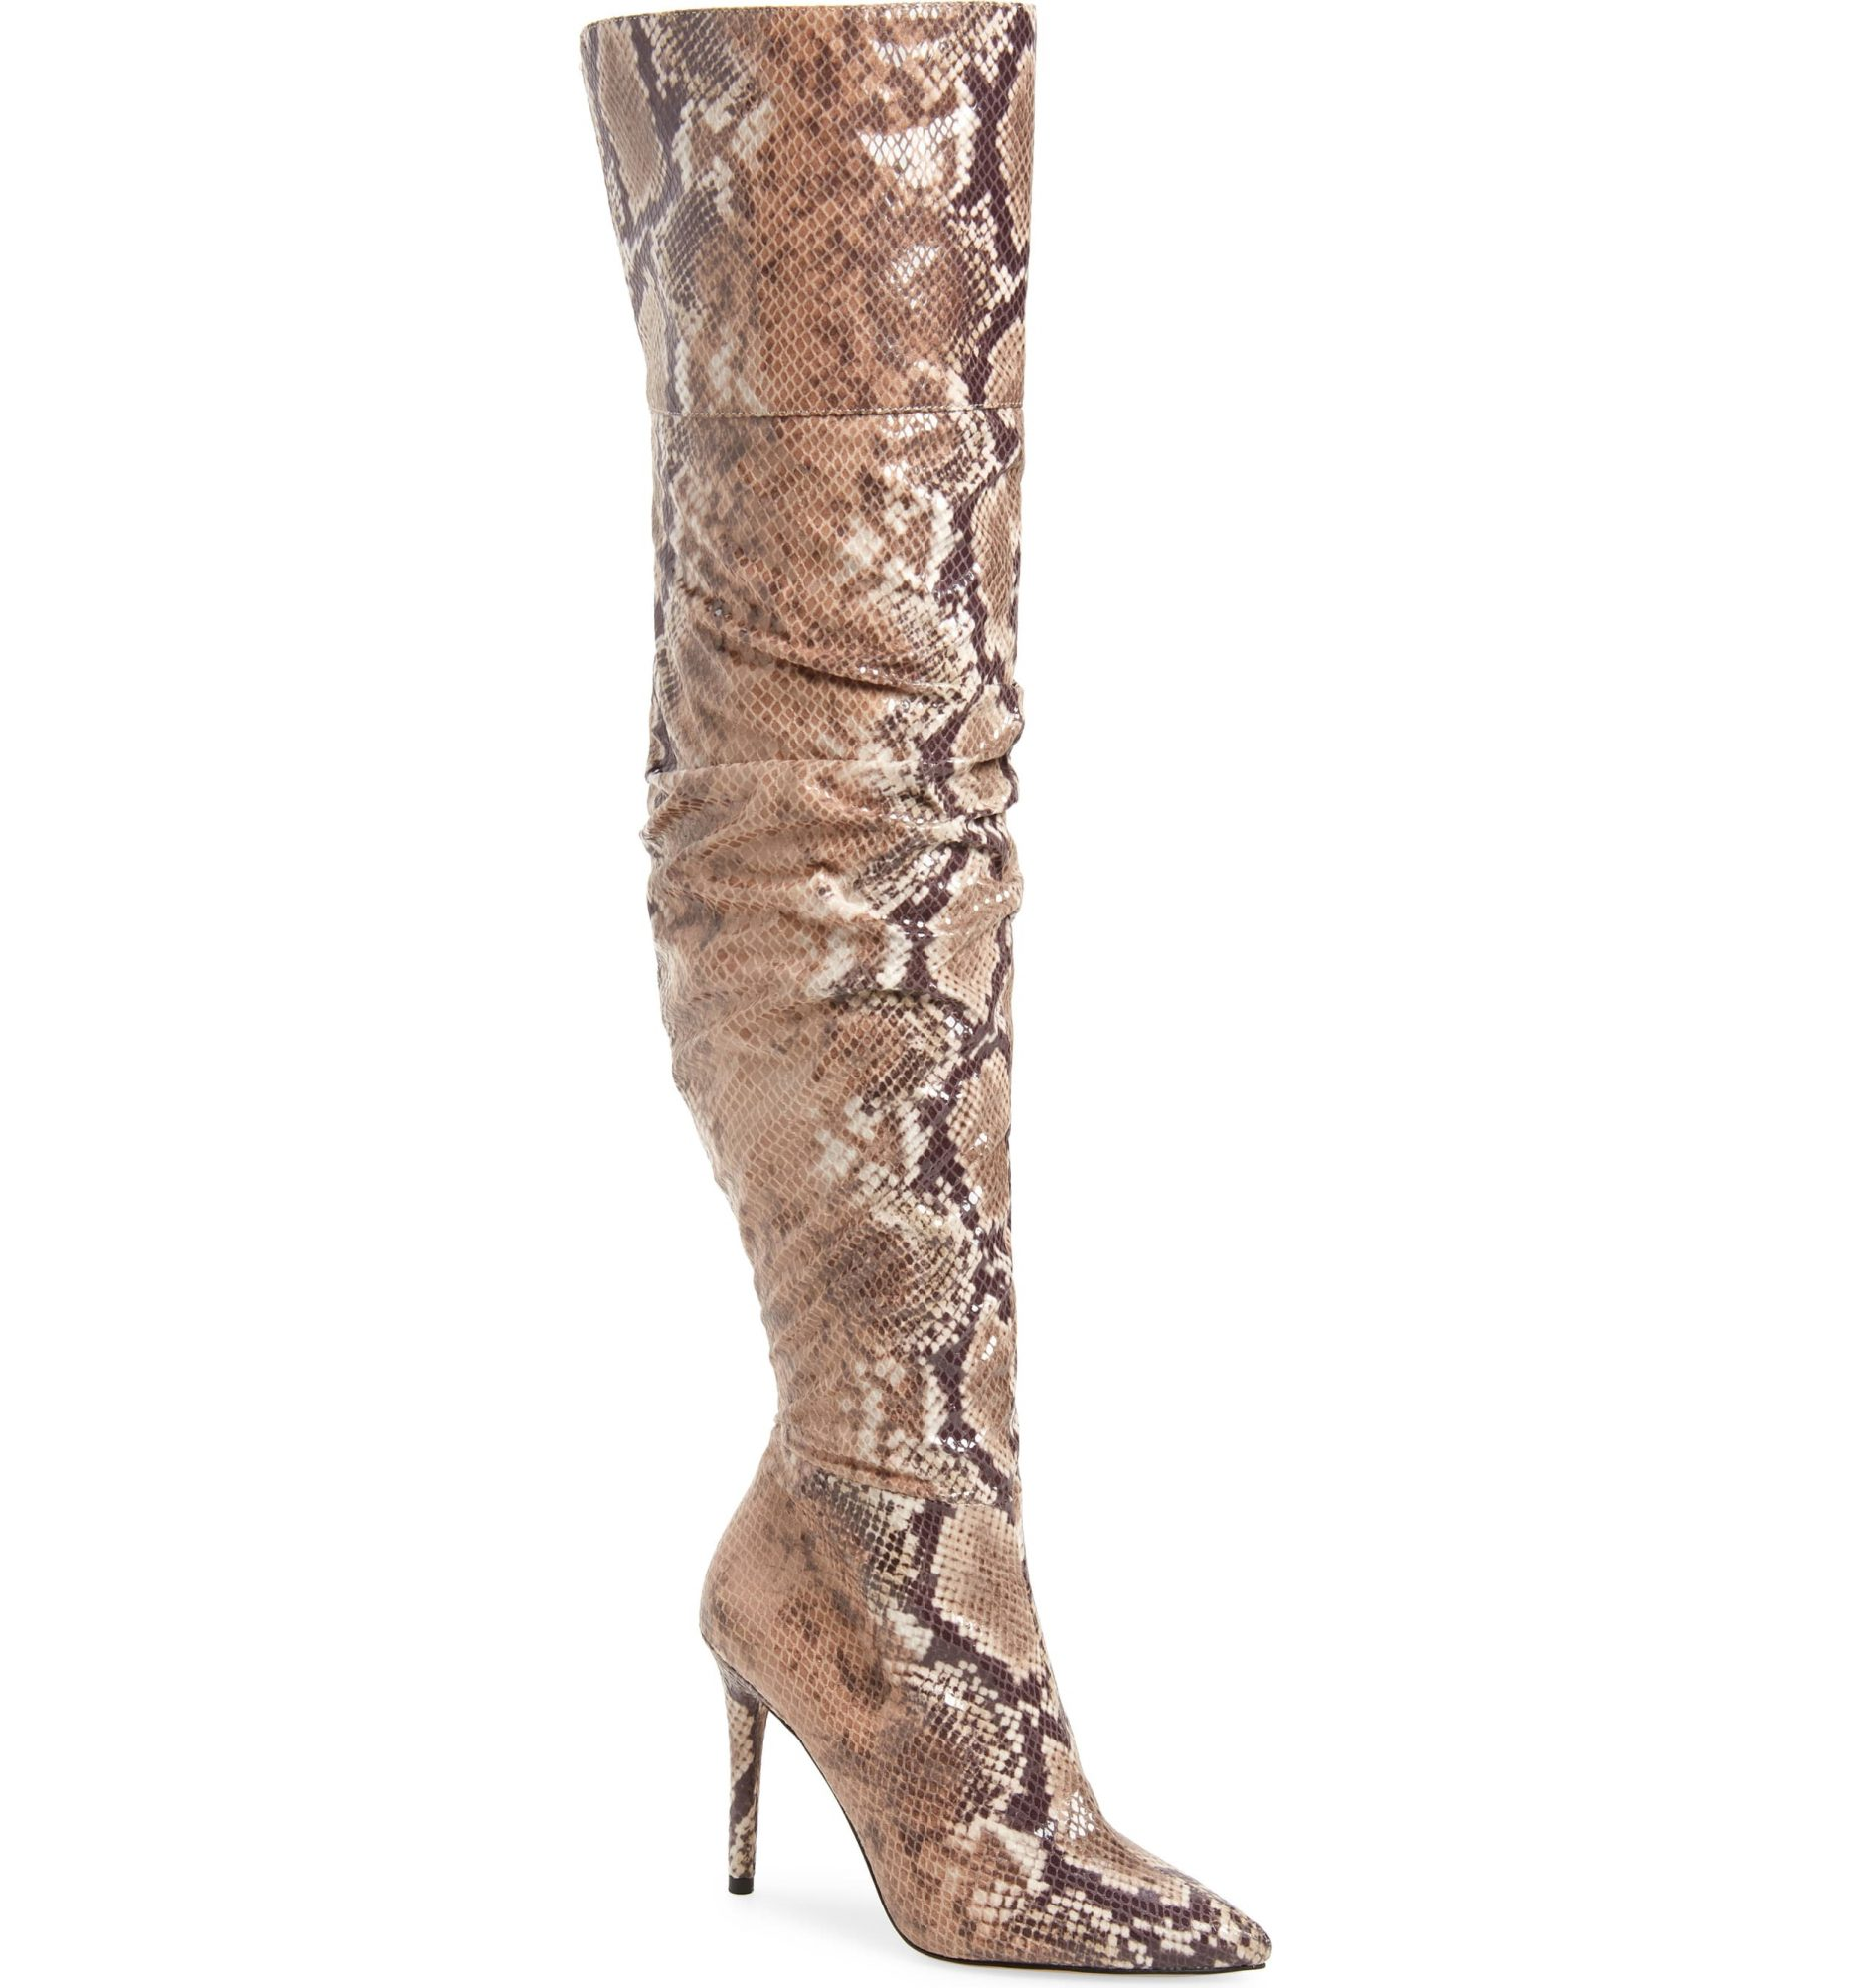 jessica simpson snake print slouchy over the knee boot nordstrom sale